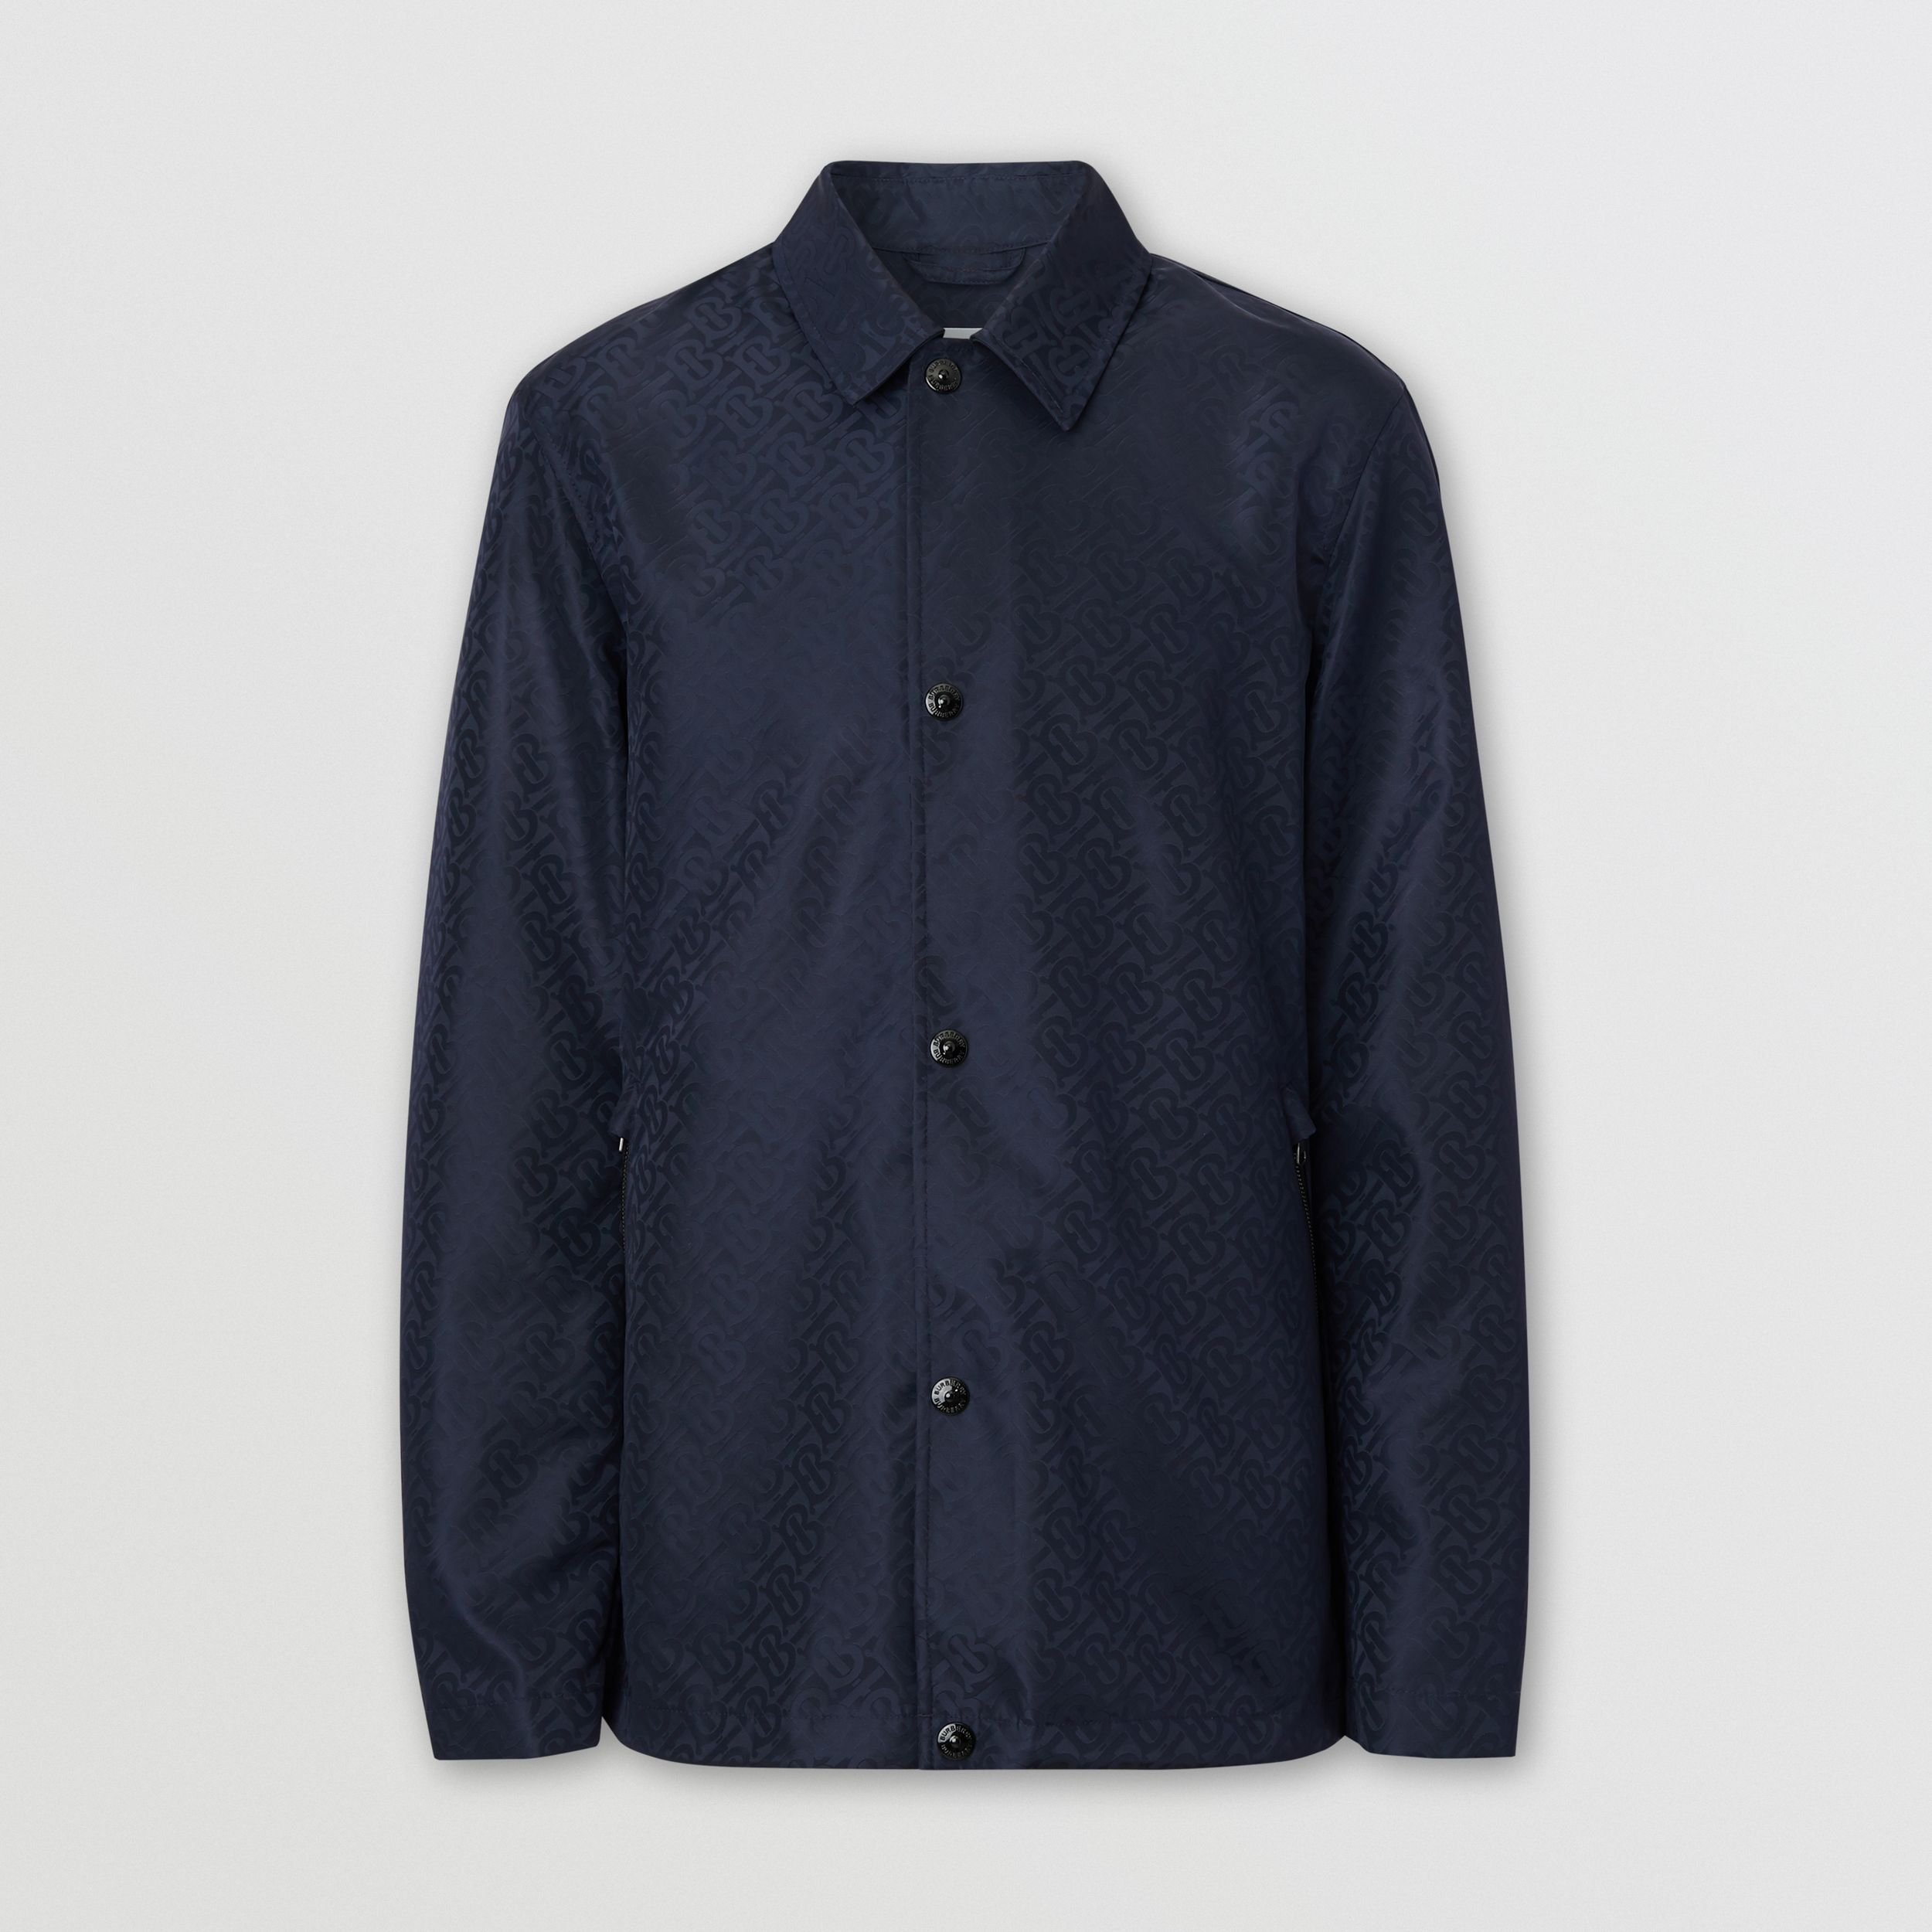 Monogram ECONYL® Jacket in Navy - Men | Burberry - 4